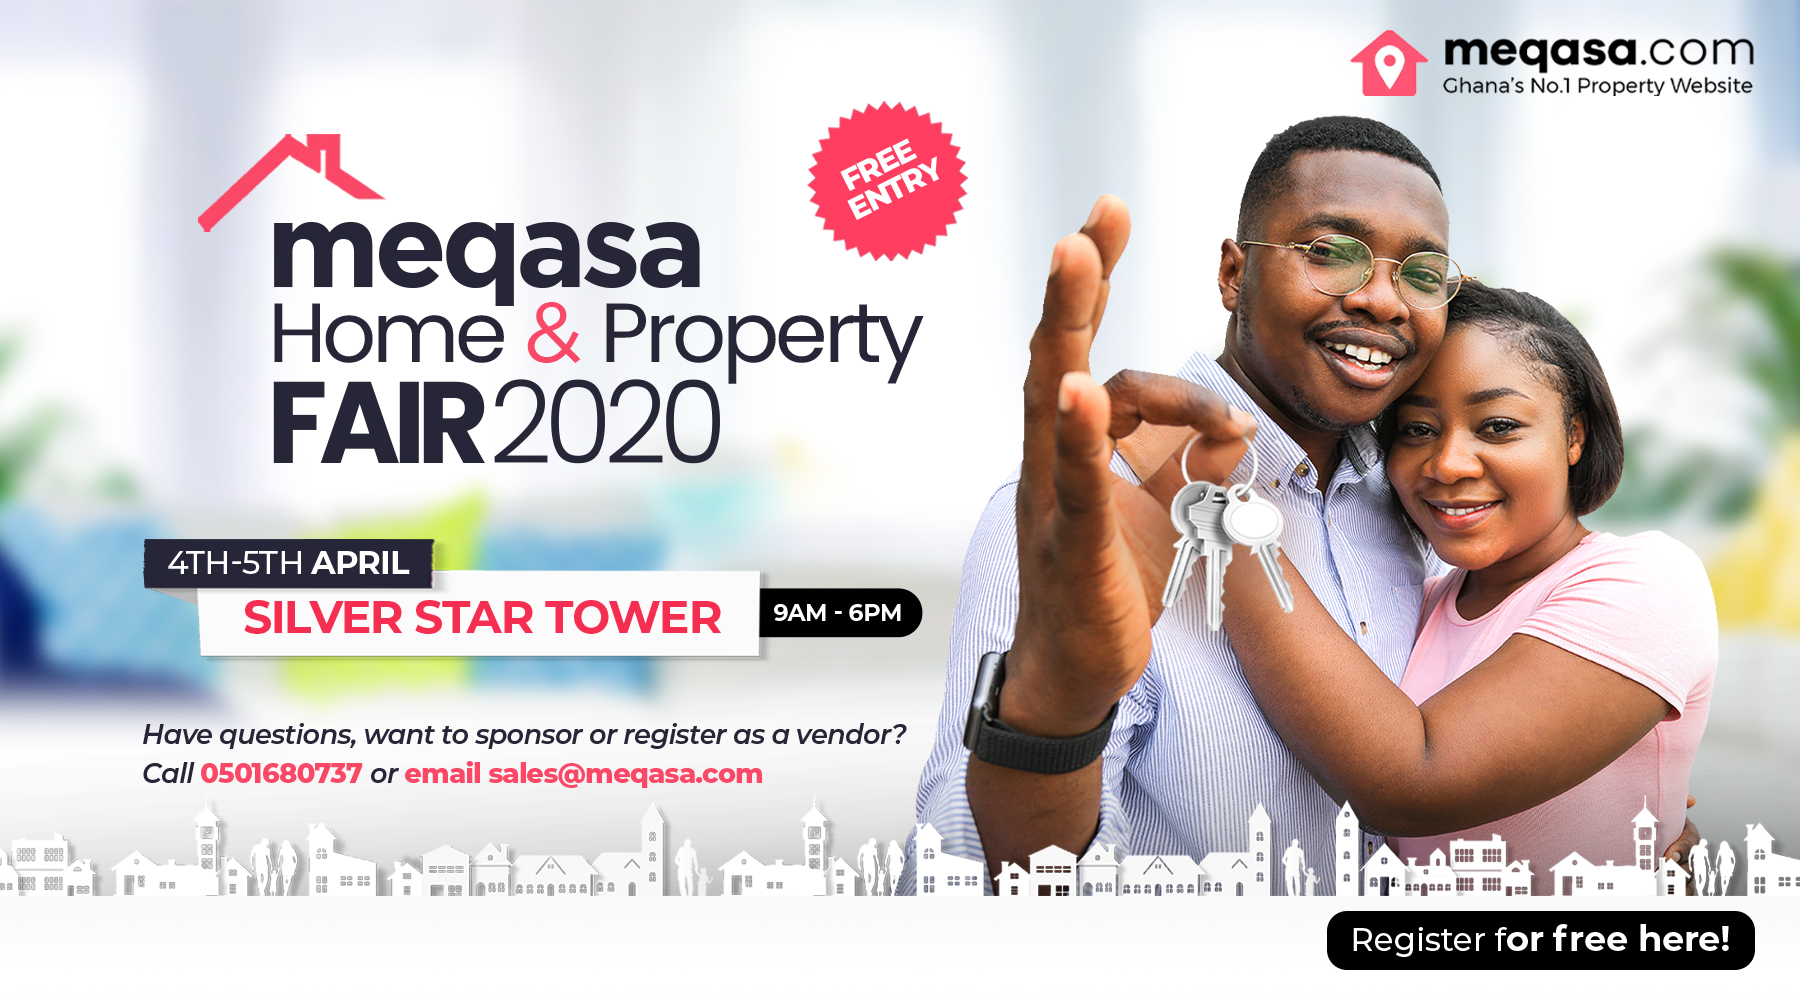 Register for meqasa home & property fair. 4th - 5th April 2020. silver star tower. 9am - 6pm. Free Entry